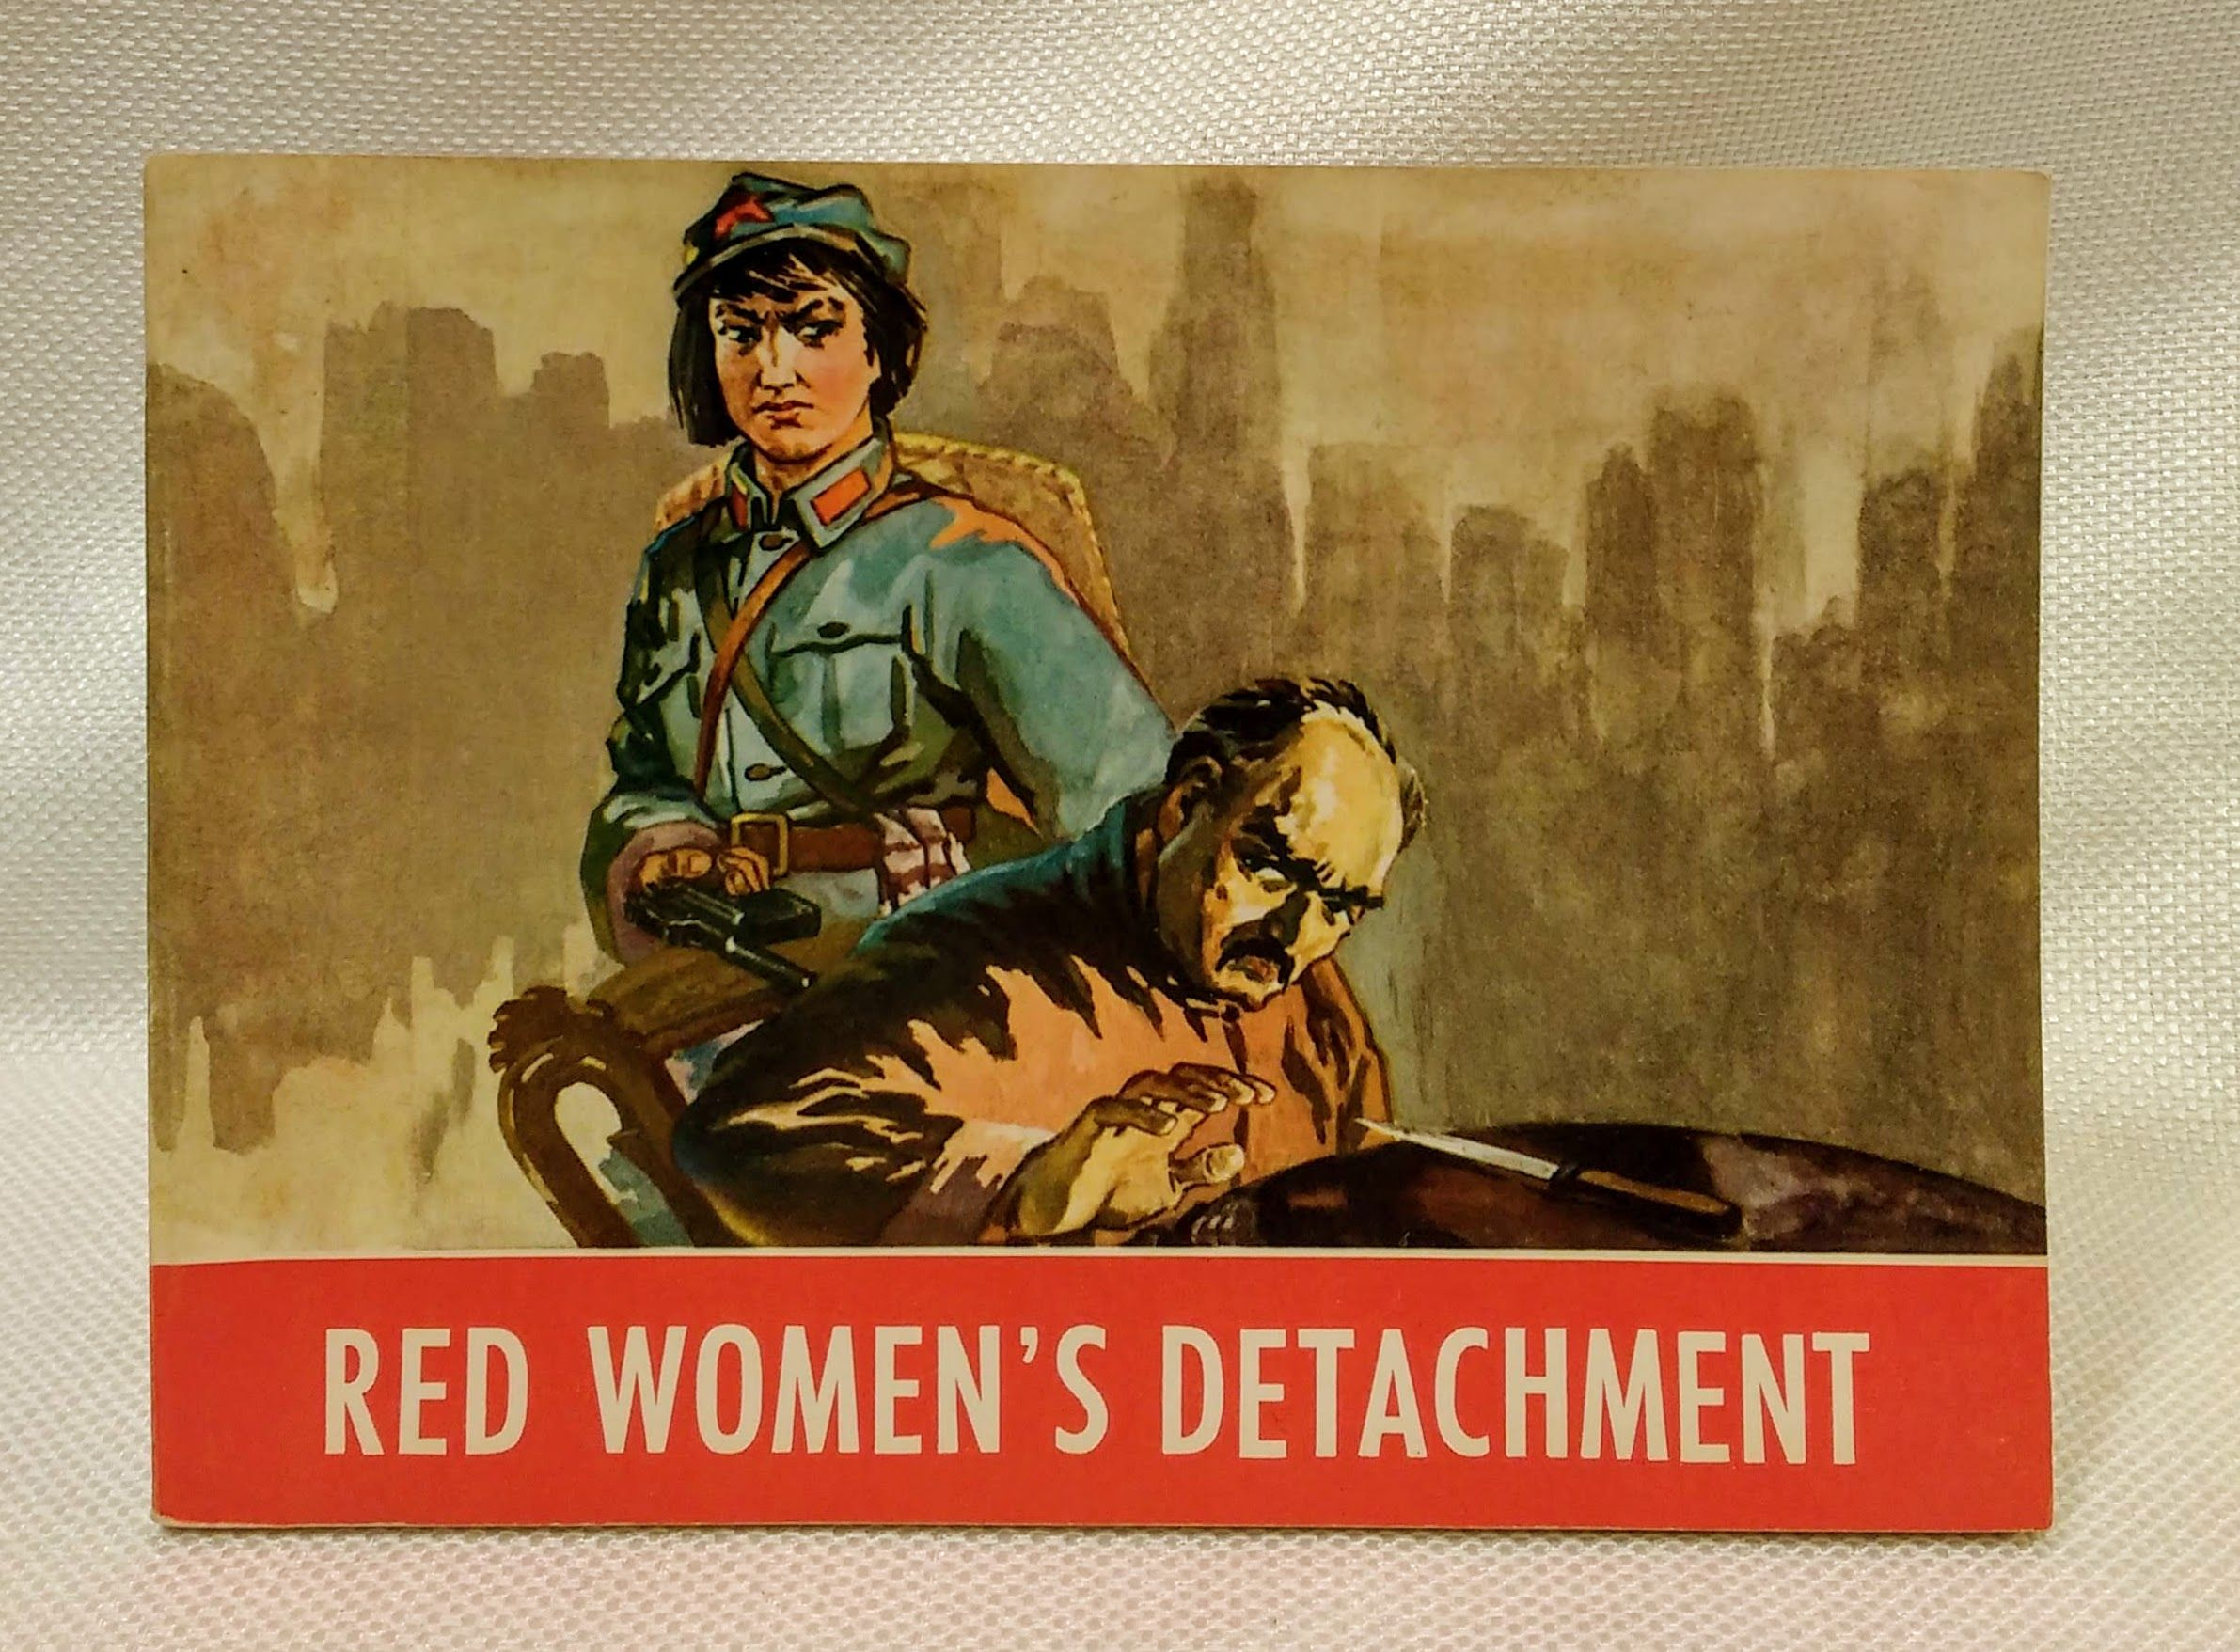 Red Women's Detachment, Liang Hsin; Sung Yu-Chieh [adaptation]; Liaoning Fine Arts Publishing House